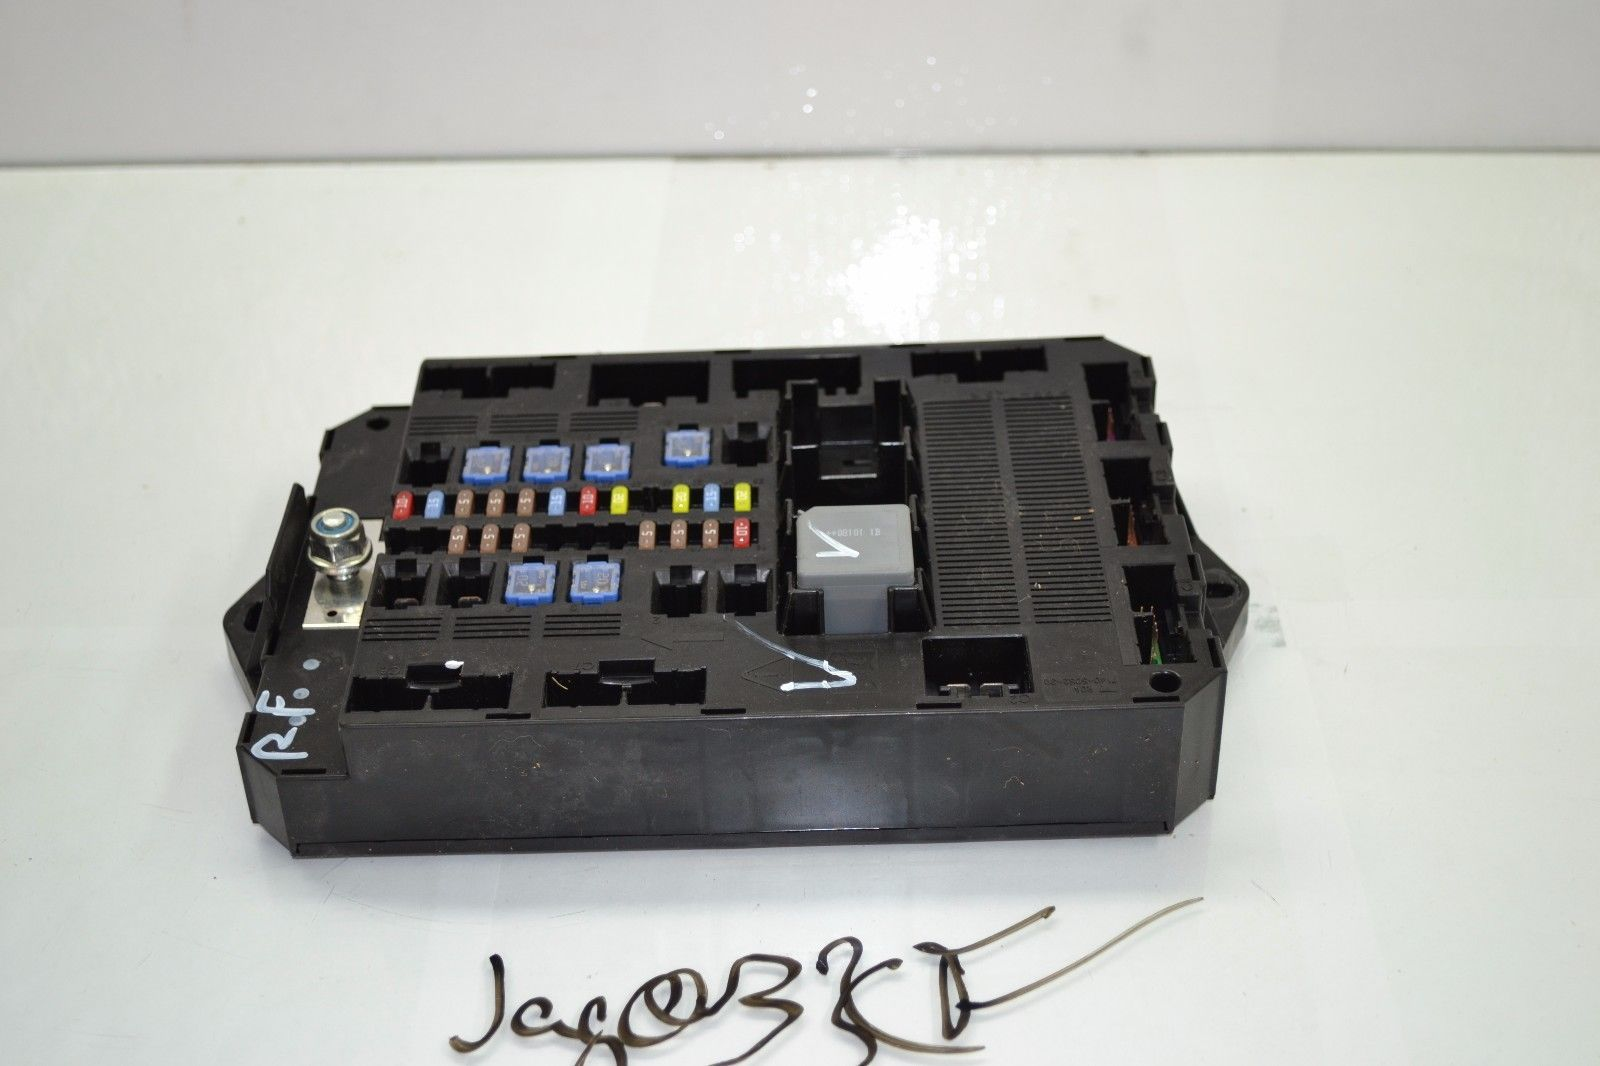 hight resolution of 2009 2010 2011 jaguar xf cabin fuse box relay 8x2t 14b476 ad